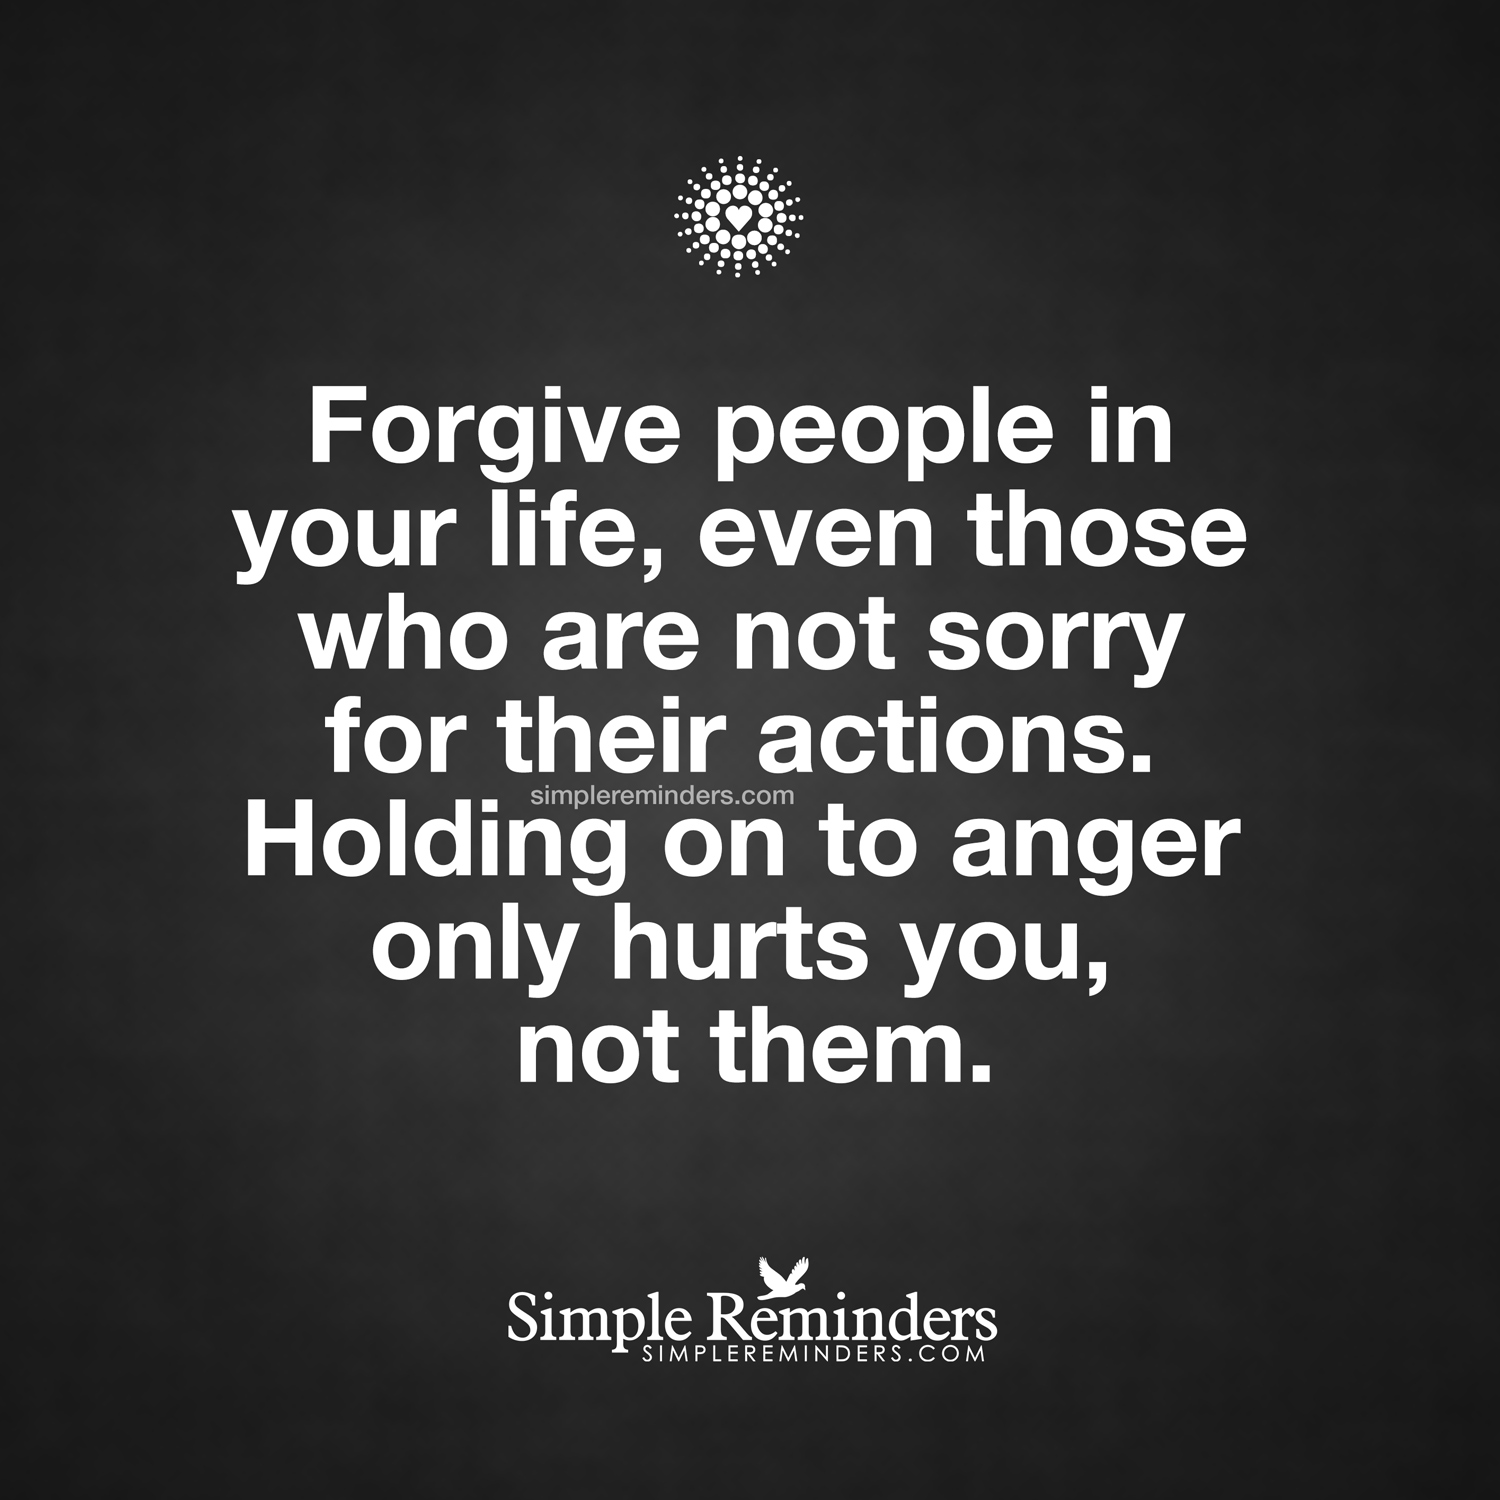 Quotes About Anger And Rage: Quotes About Lifeby Authors. QuotesGram